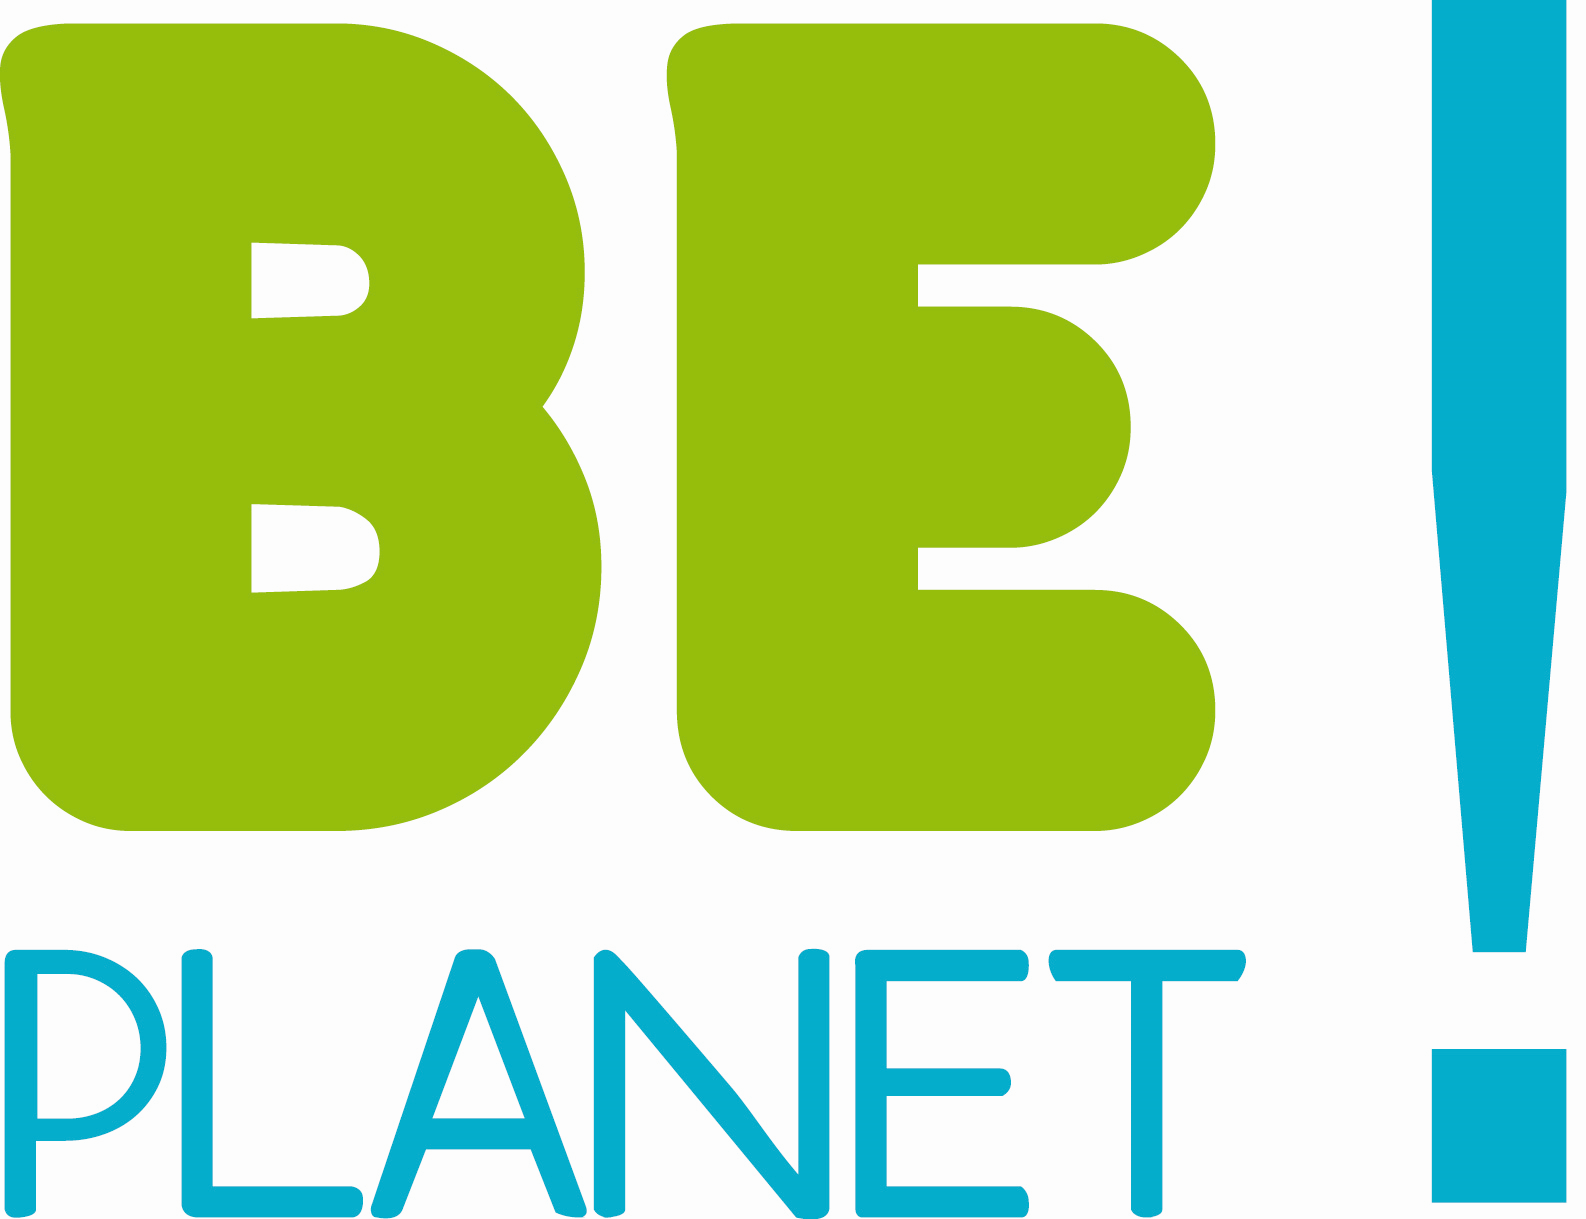 Be Planet